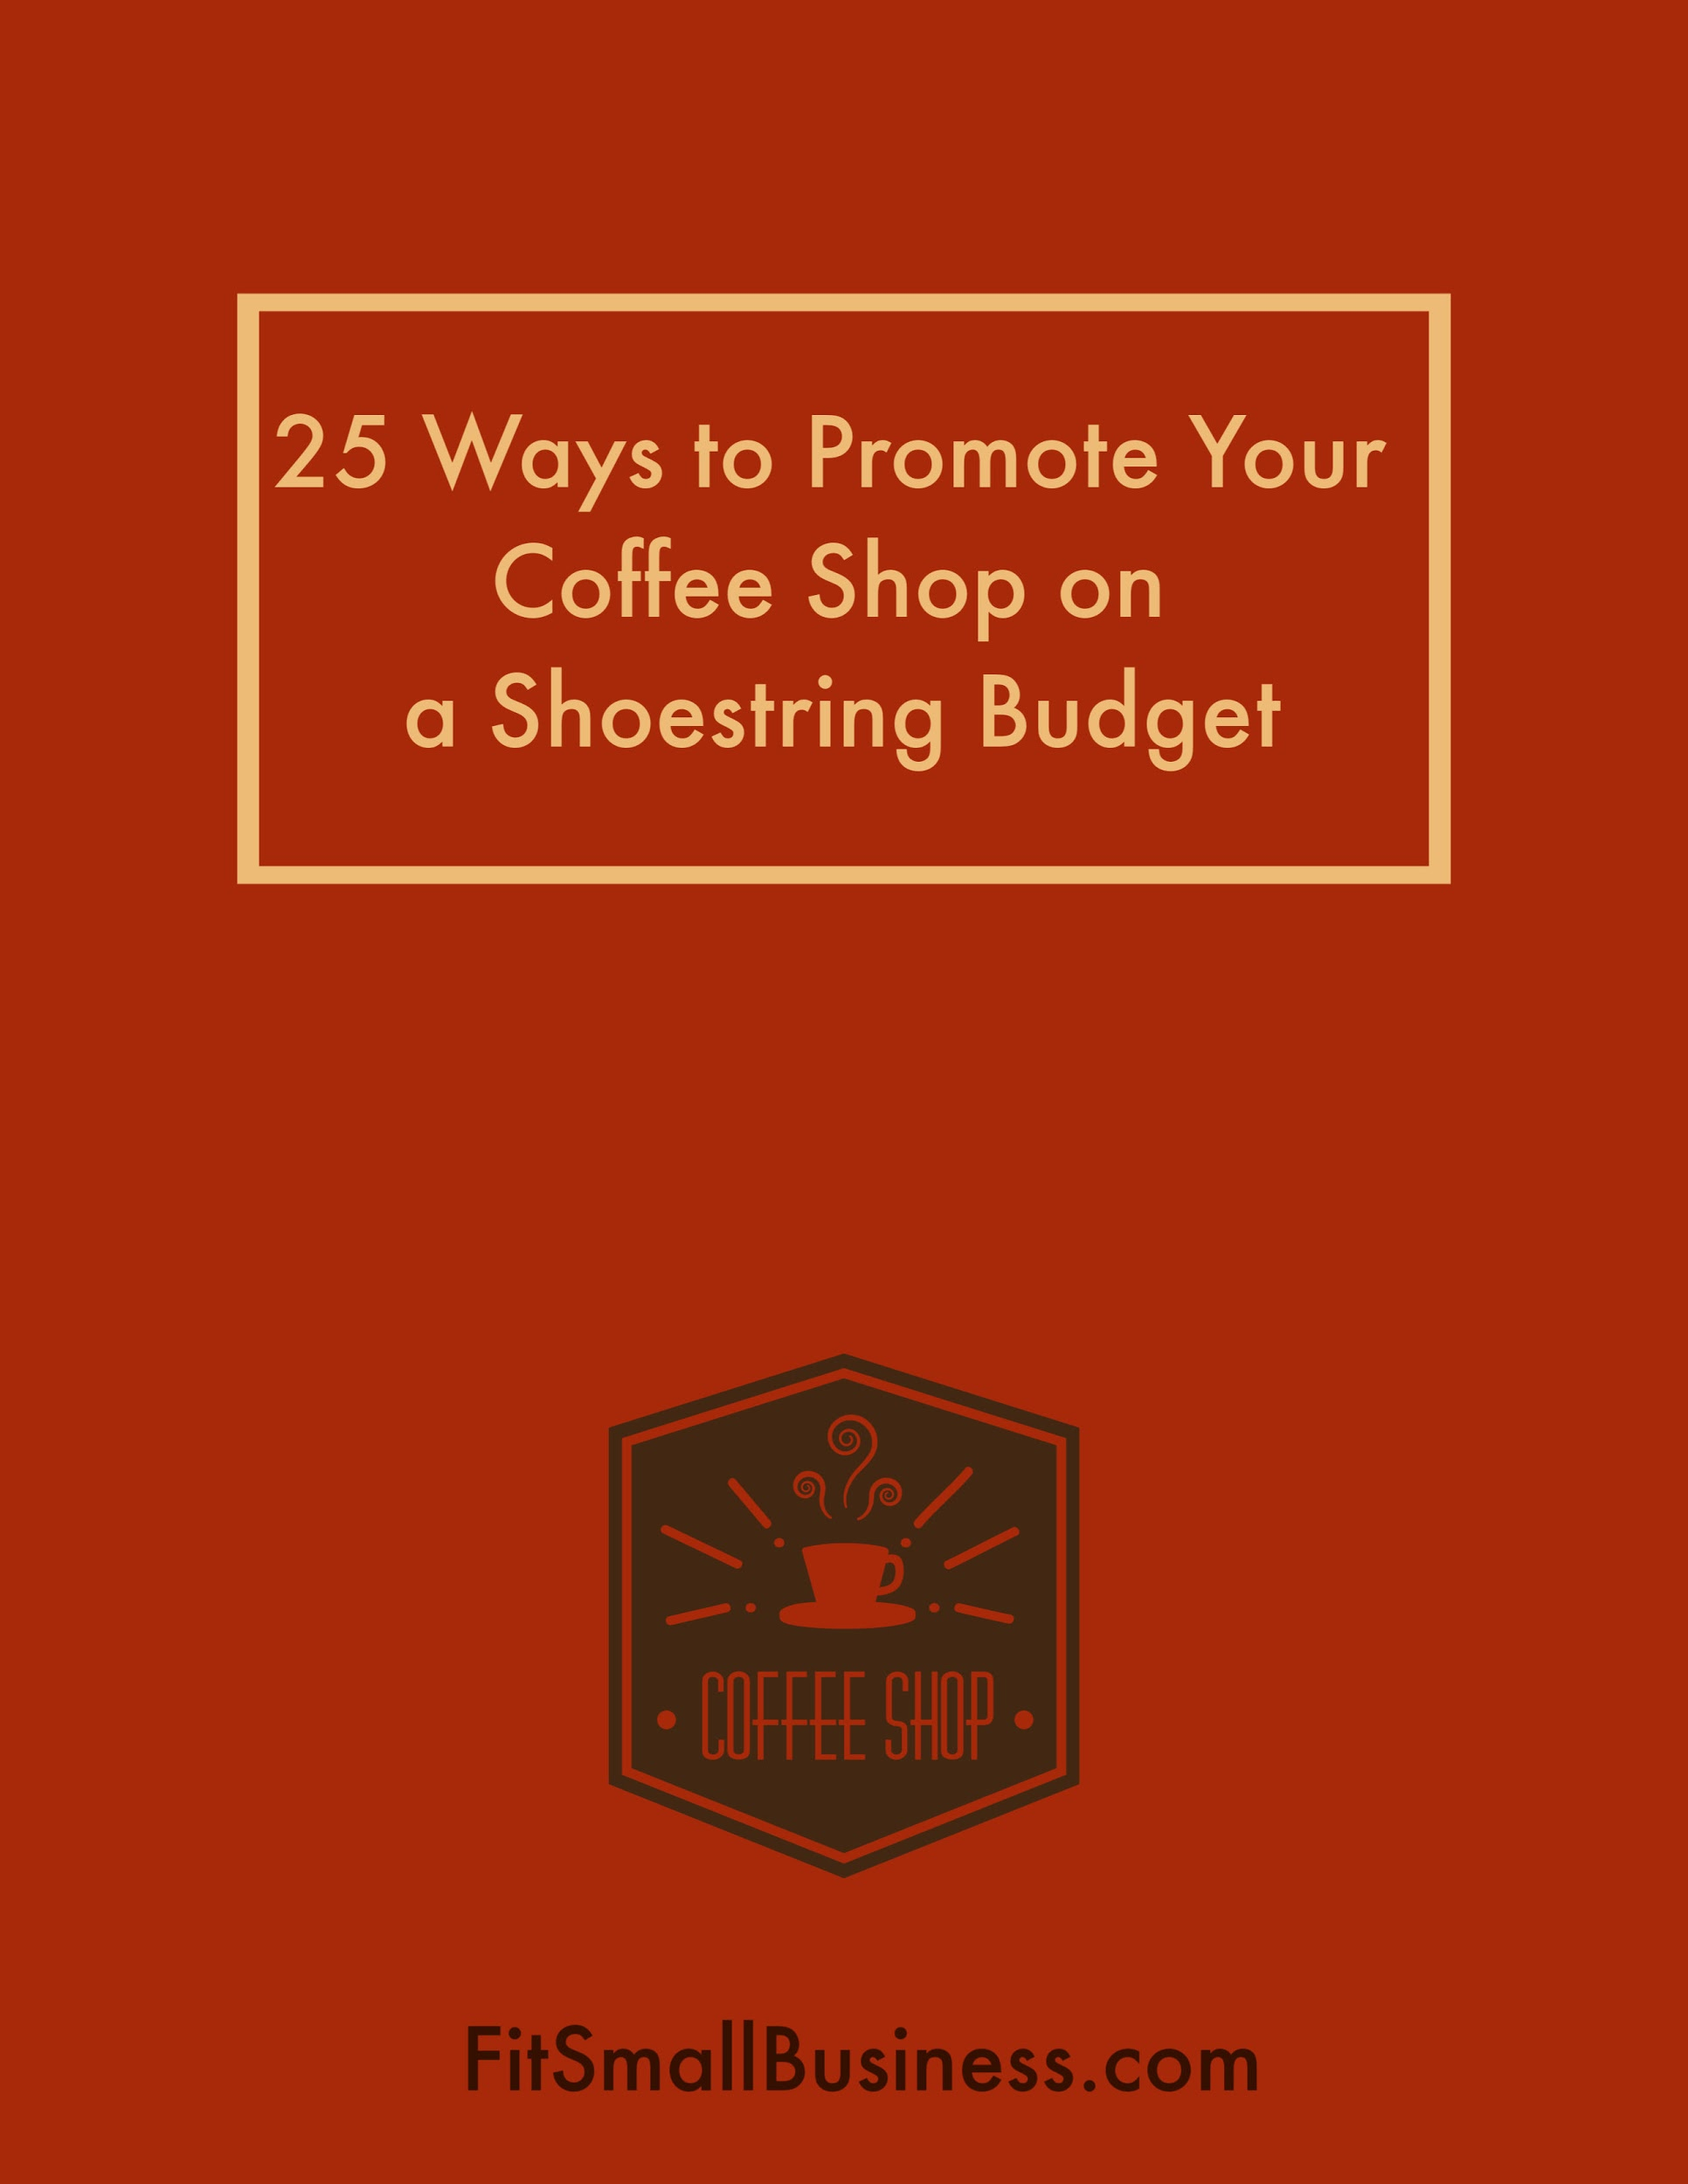 25 Ways to Promote Your Coffee Shop on a Shoestring Budget